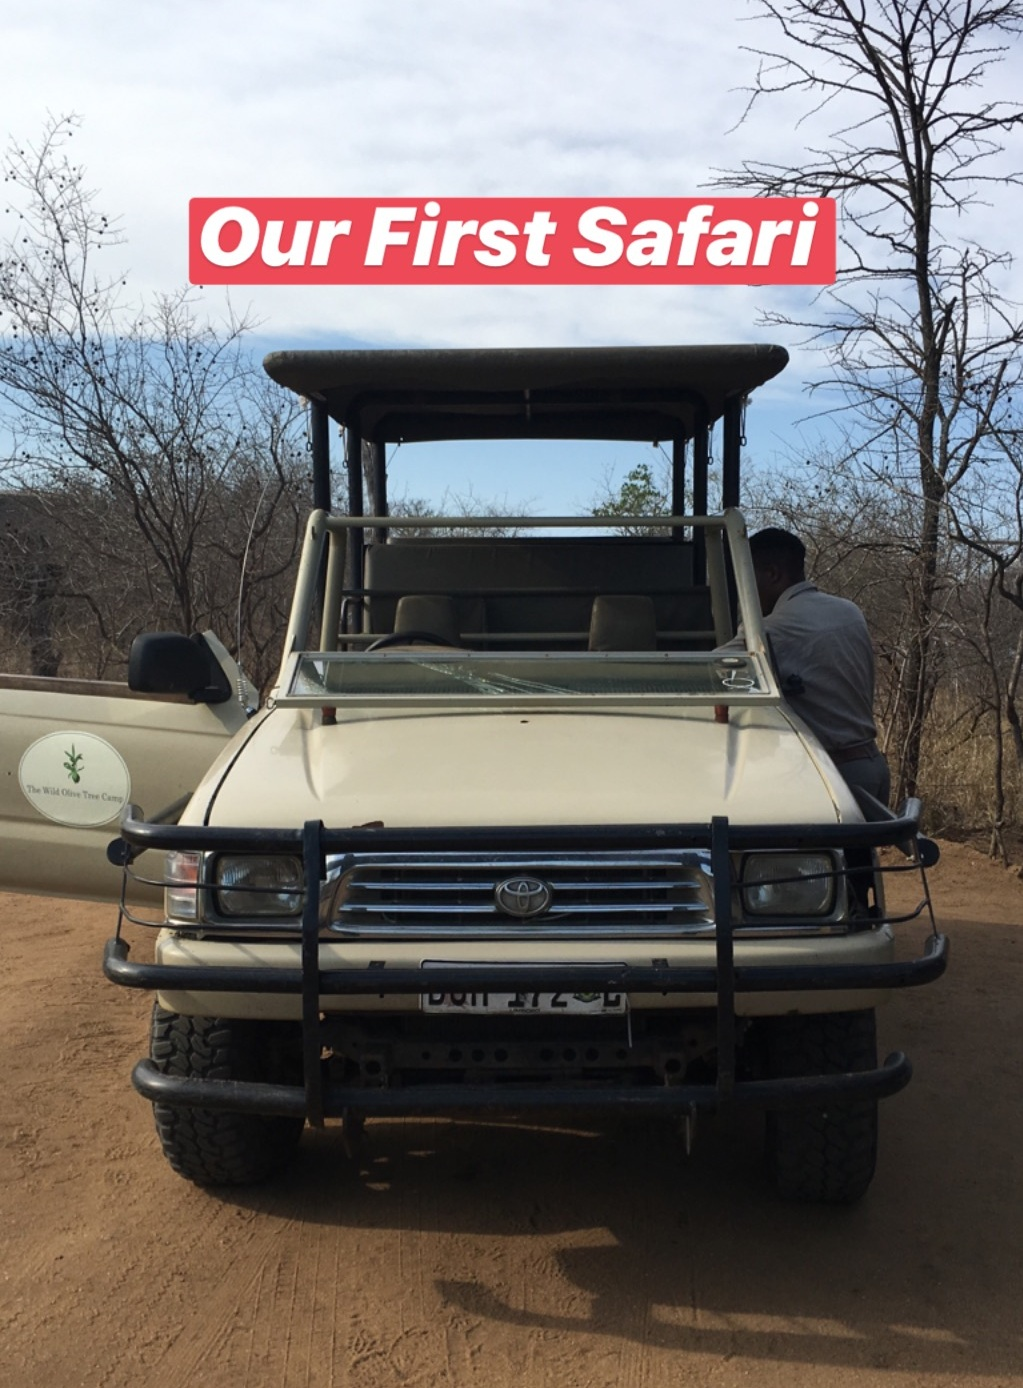 A modified Toyota Hilux: The safari vehicle of choice